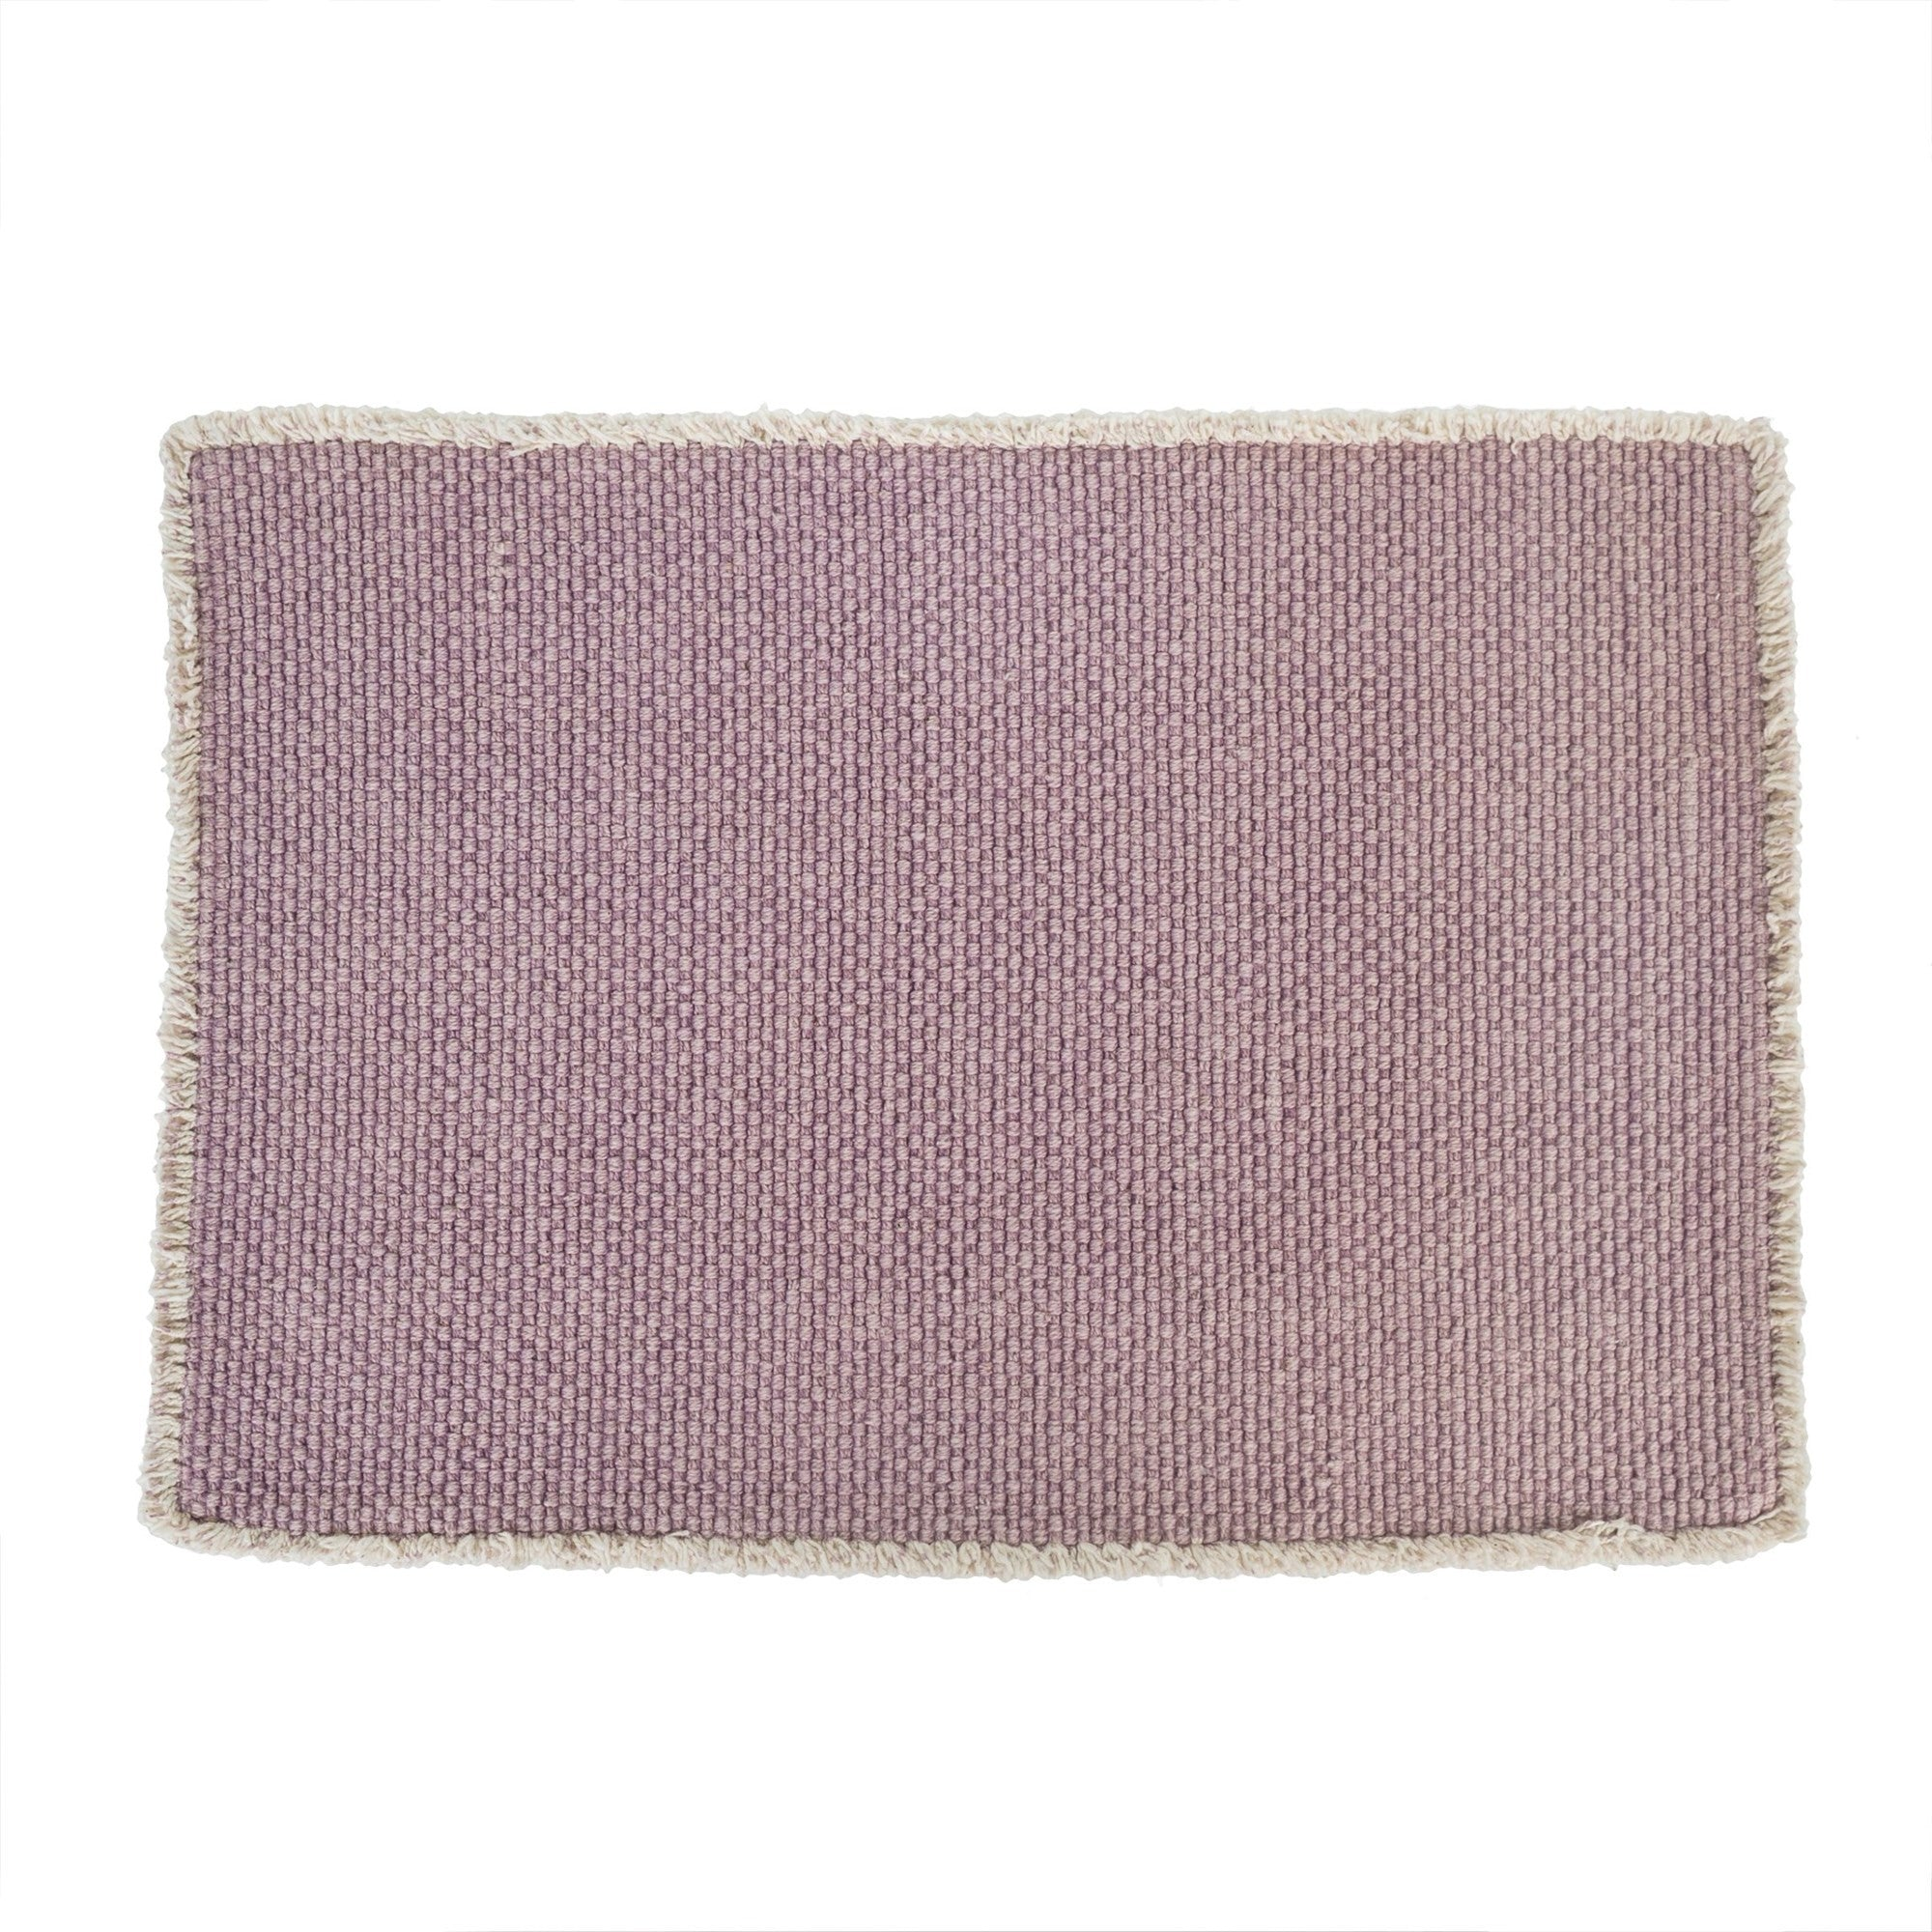 Stonewashed Placemat - Pink -  Soft Furnishings - Indaba Trading - Putti Fine Furnishings Toronto Canada